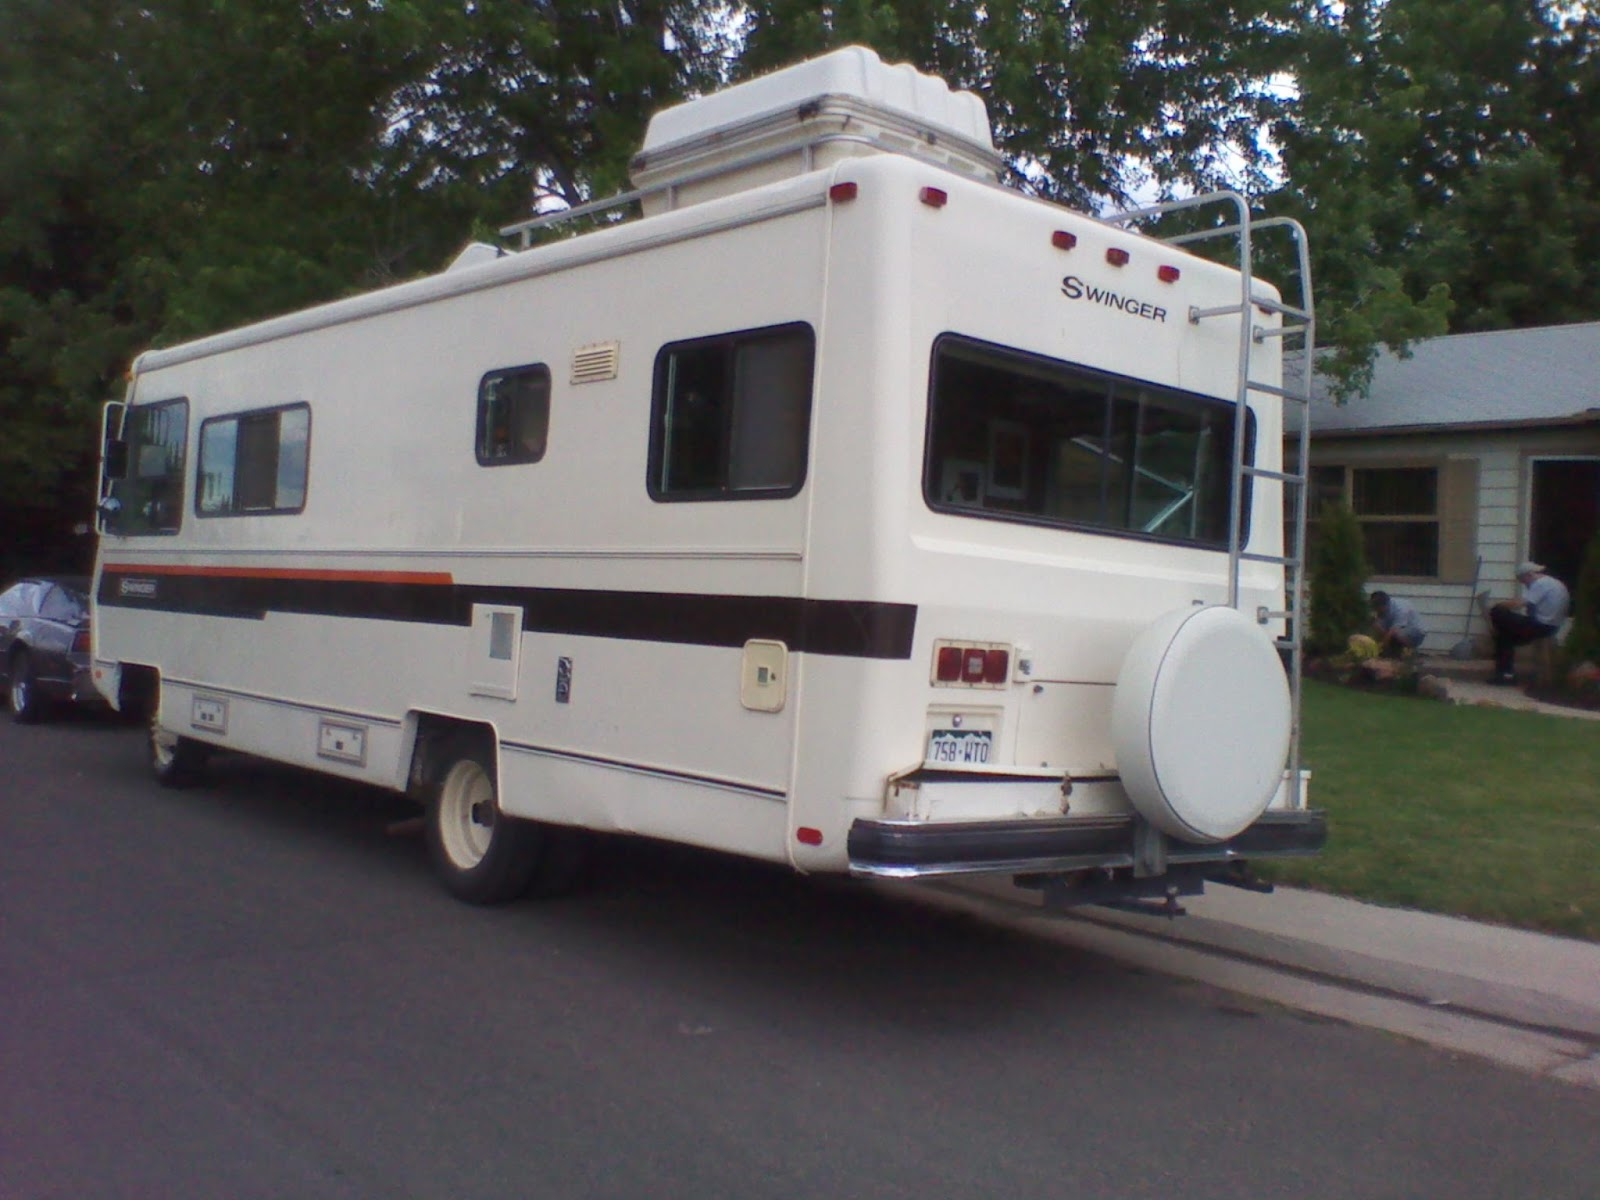 Swinger travel trailer